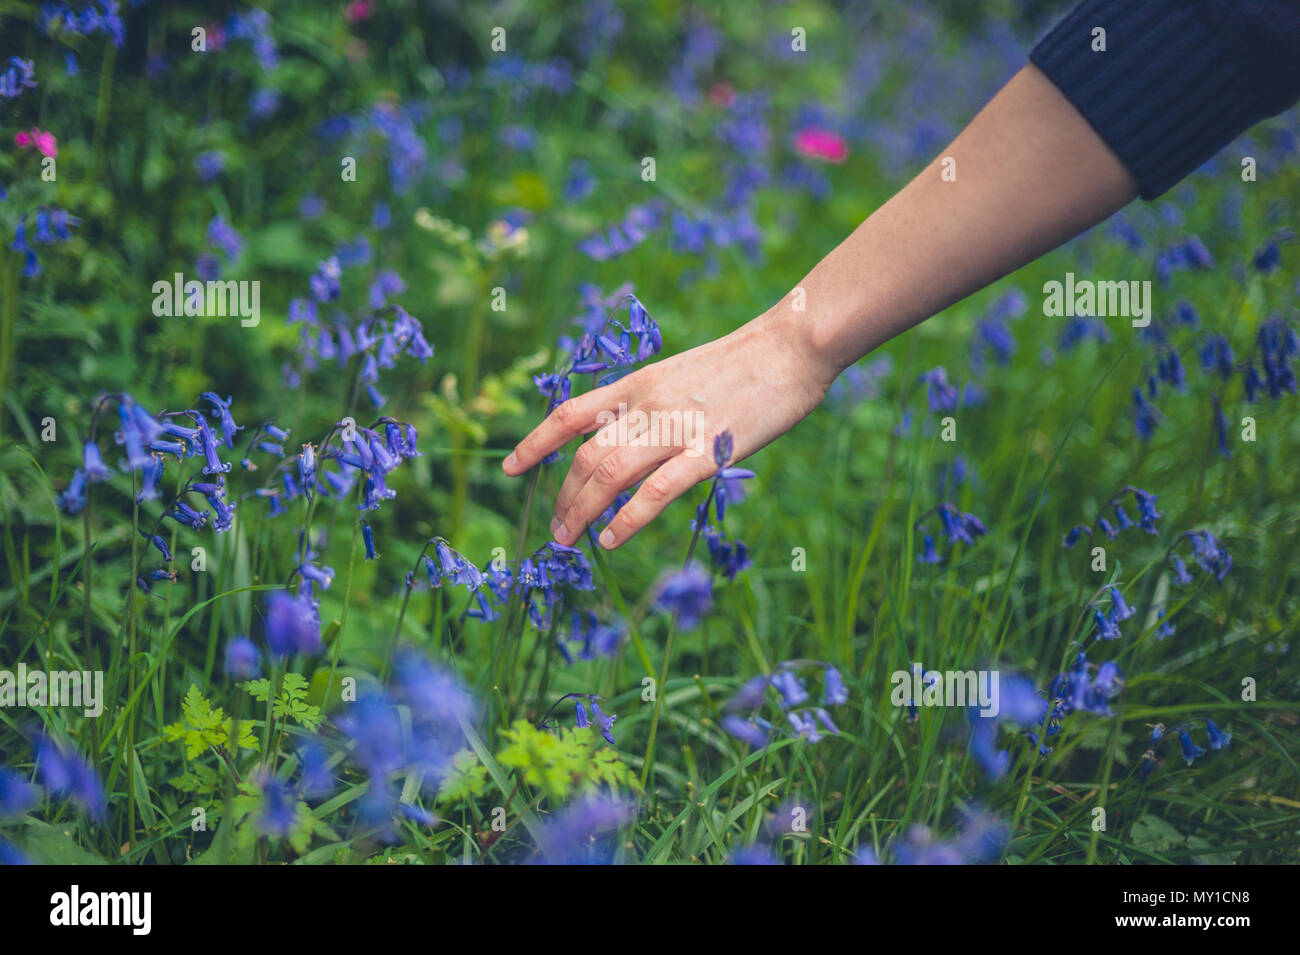 The hand of a young woman touching bluebells - Stock Image